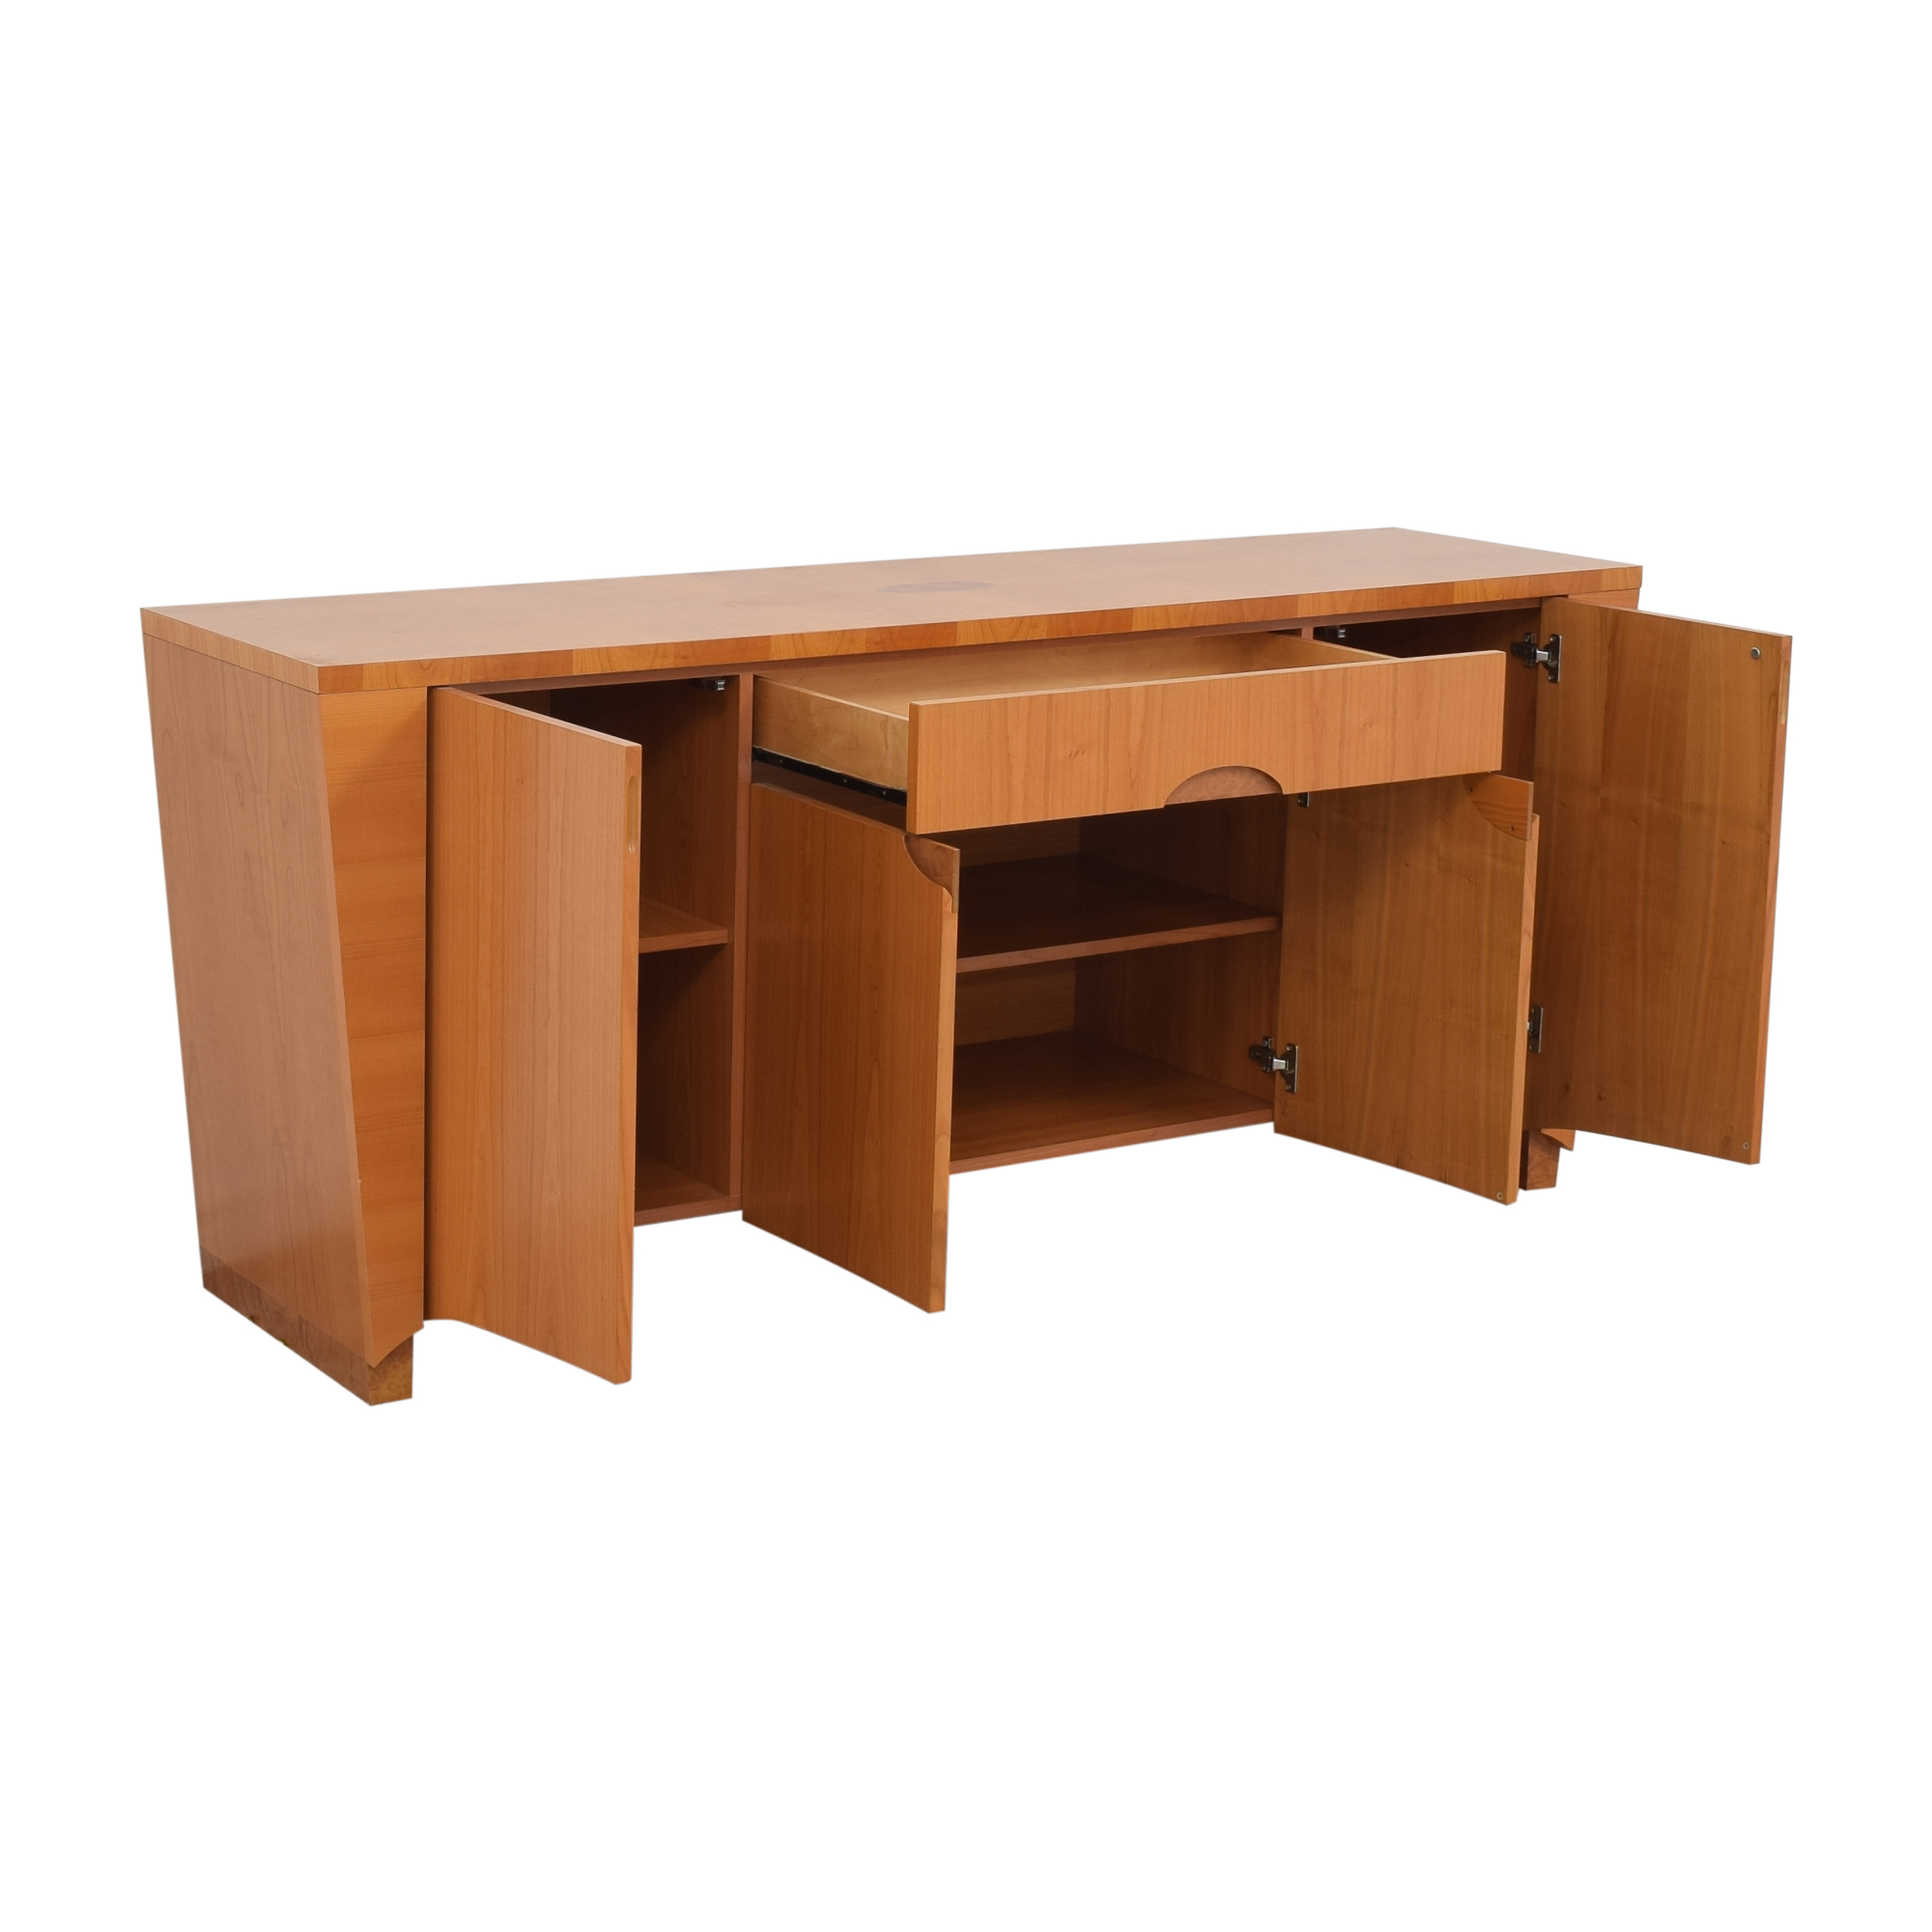 buy Excelsior Designs Italian Modern Style Buffet Excelsior Designs Cabinets & Sideboards